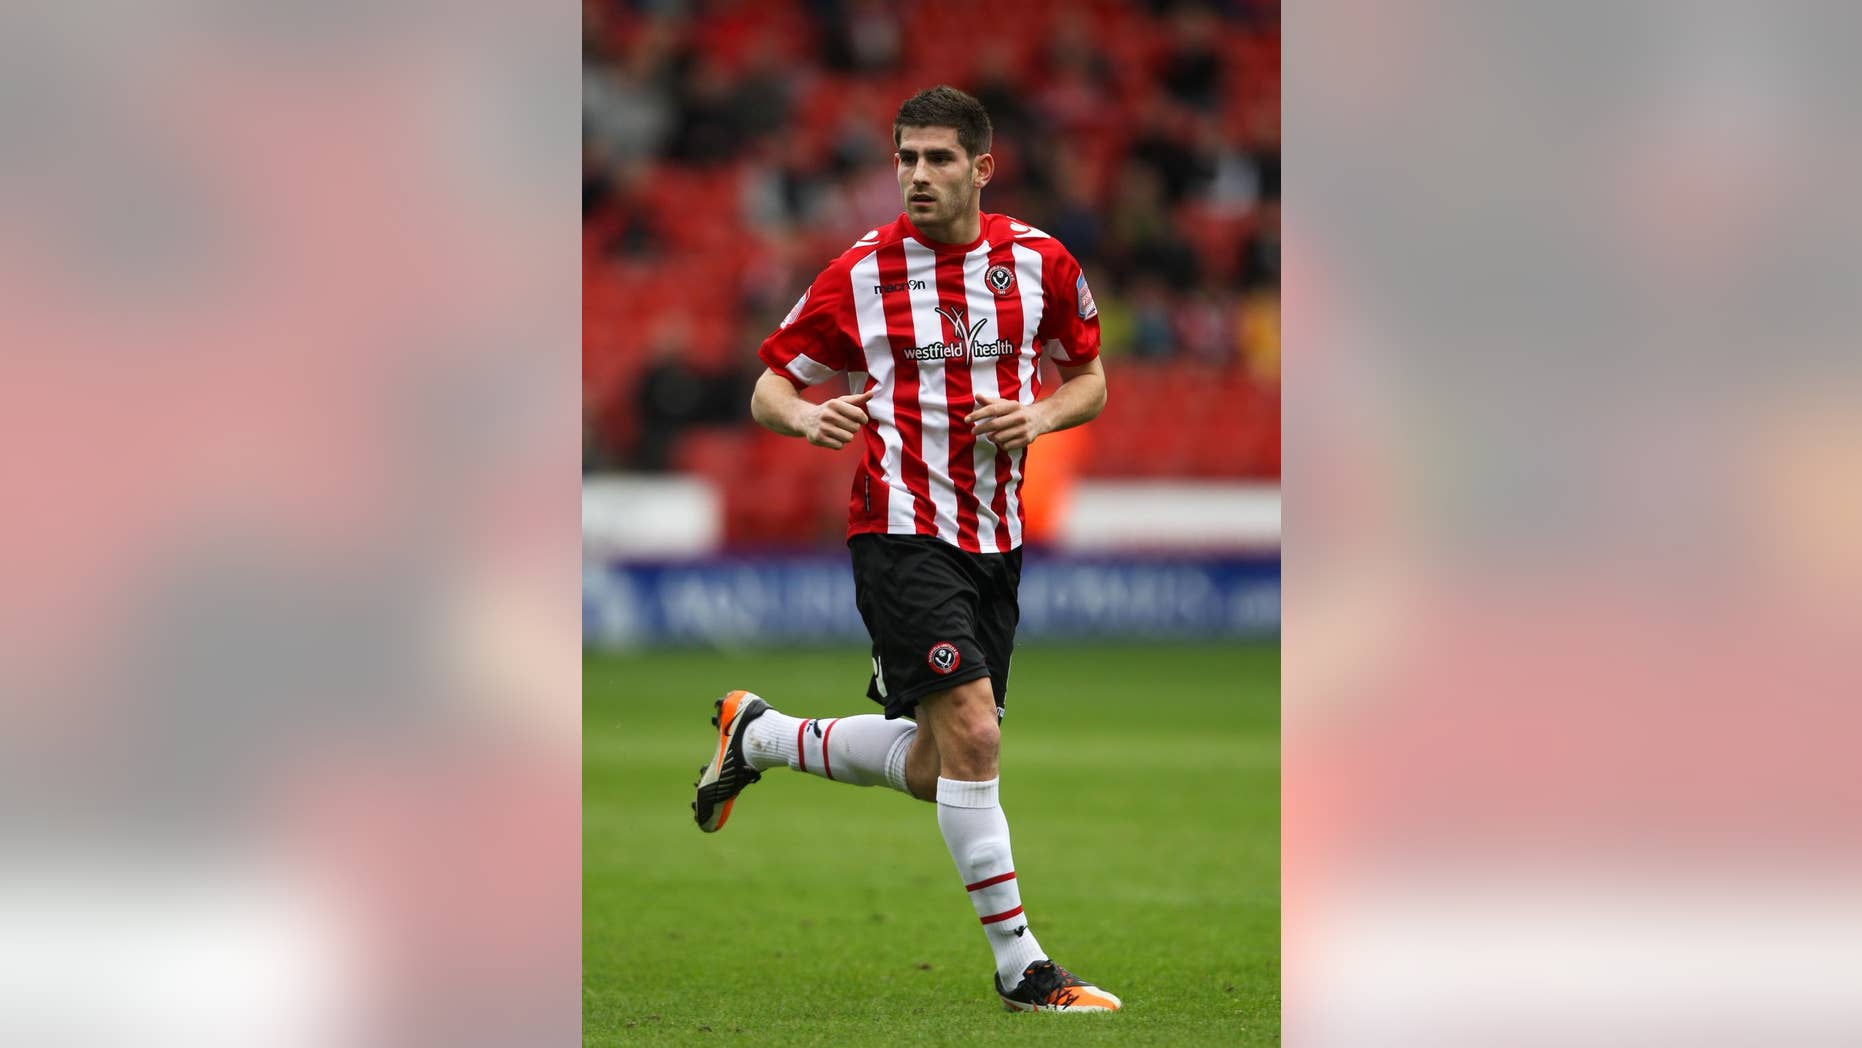 FILE - This March 17, 2013 file photo of footballer Ched Evans at Sheffield United. The former Premier League footballer who was convicted of rape has been told he can resume training with third tier club Sheffield United amid a national debate about the decision.  (AP Photo/Nick Potts, PA) UNITED KINGDOM OUT